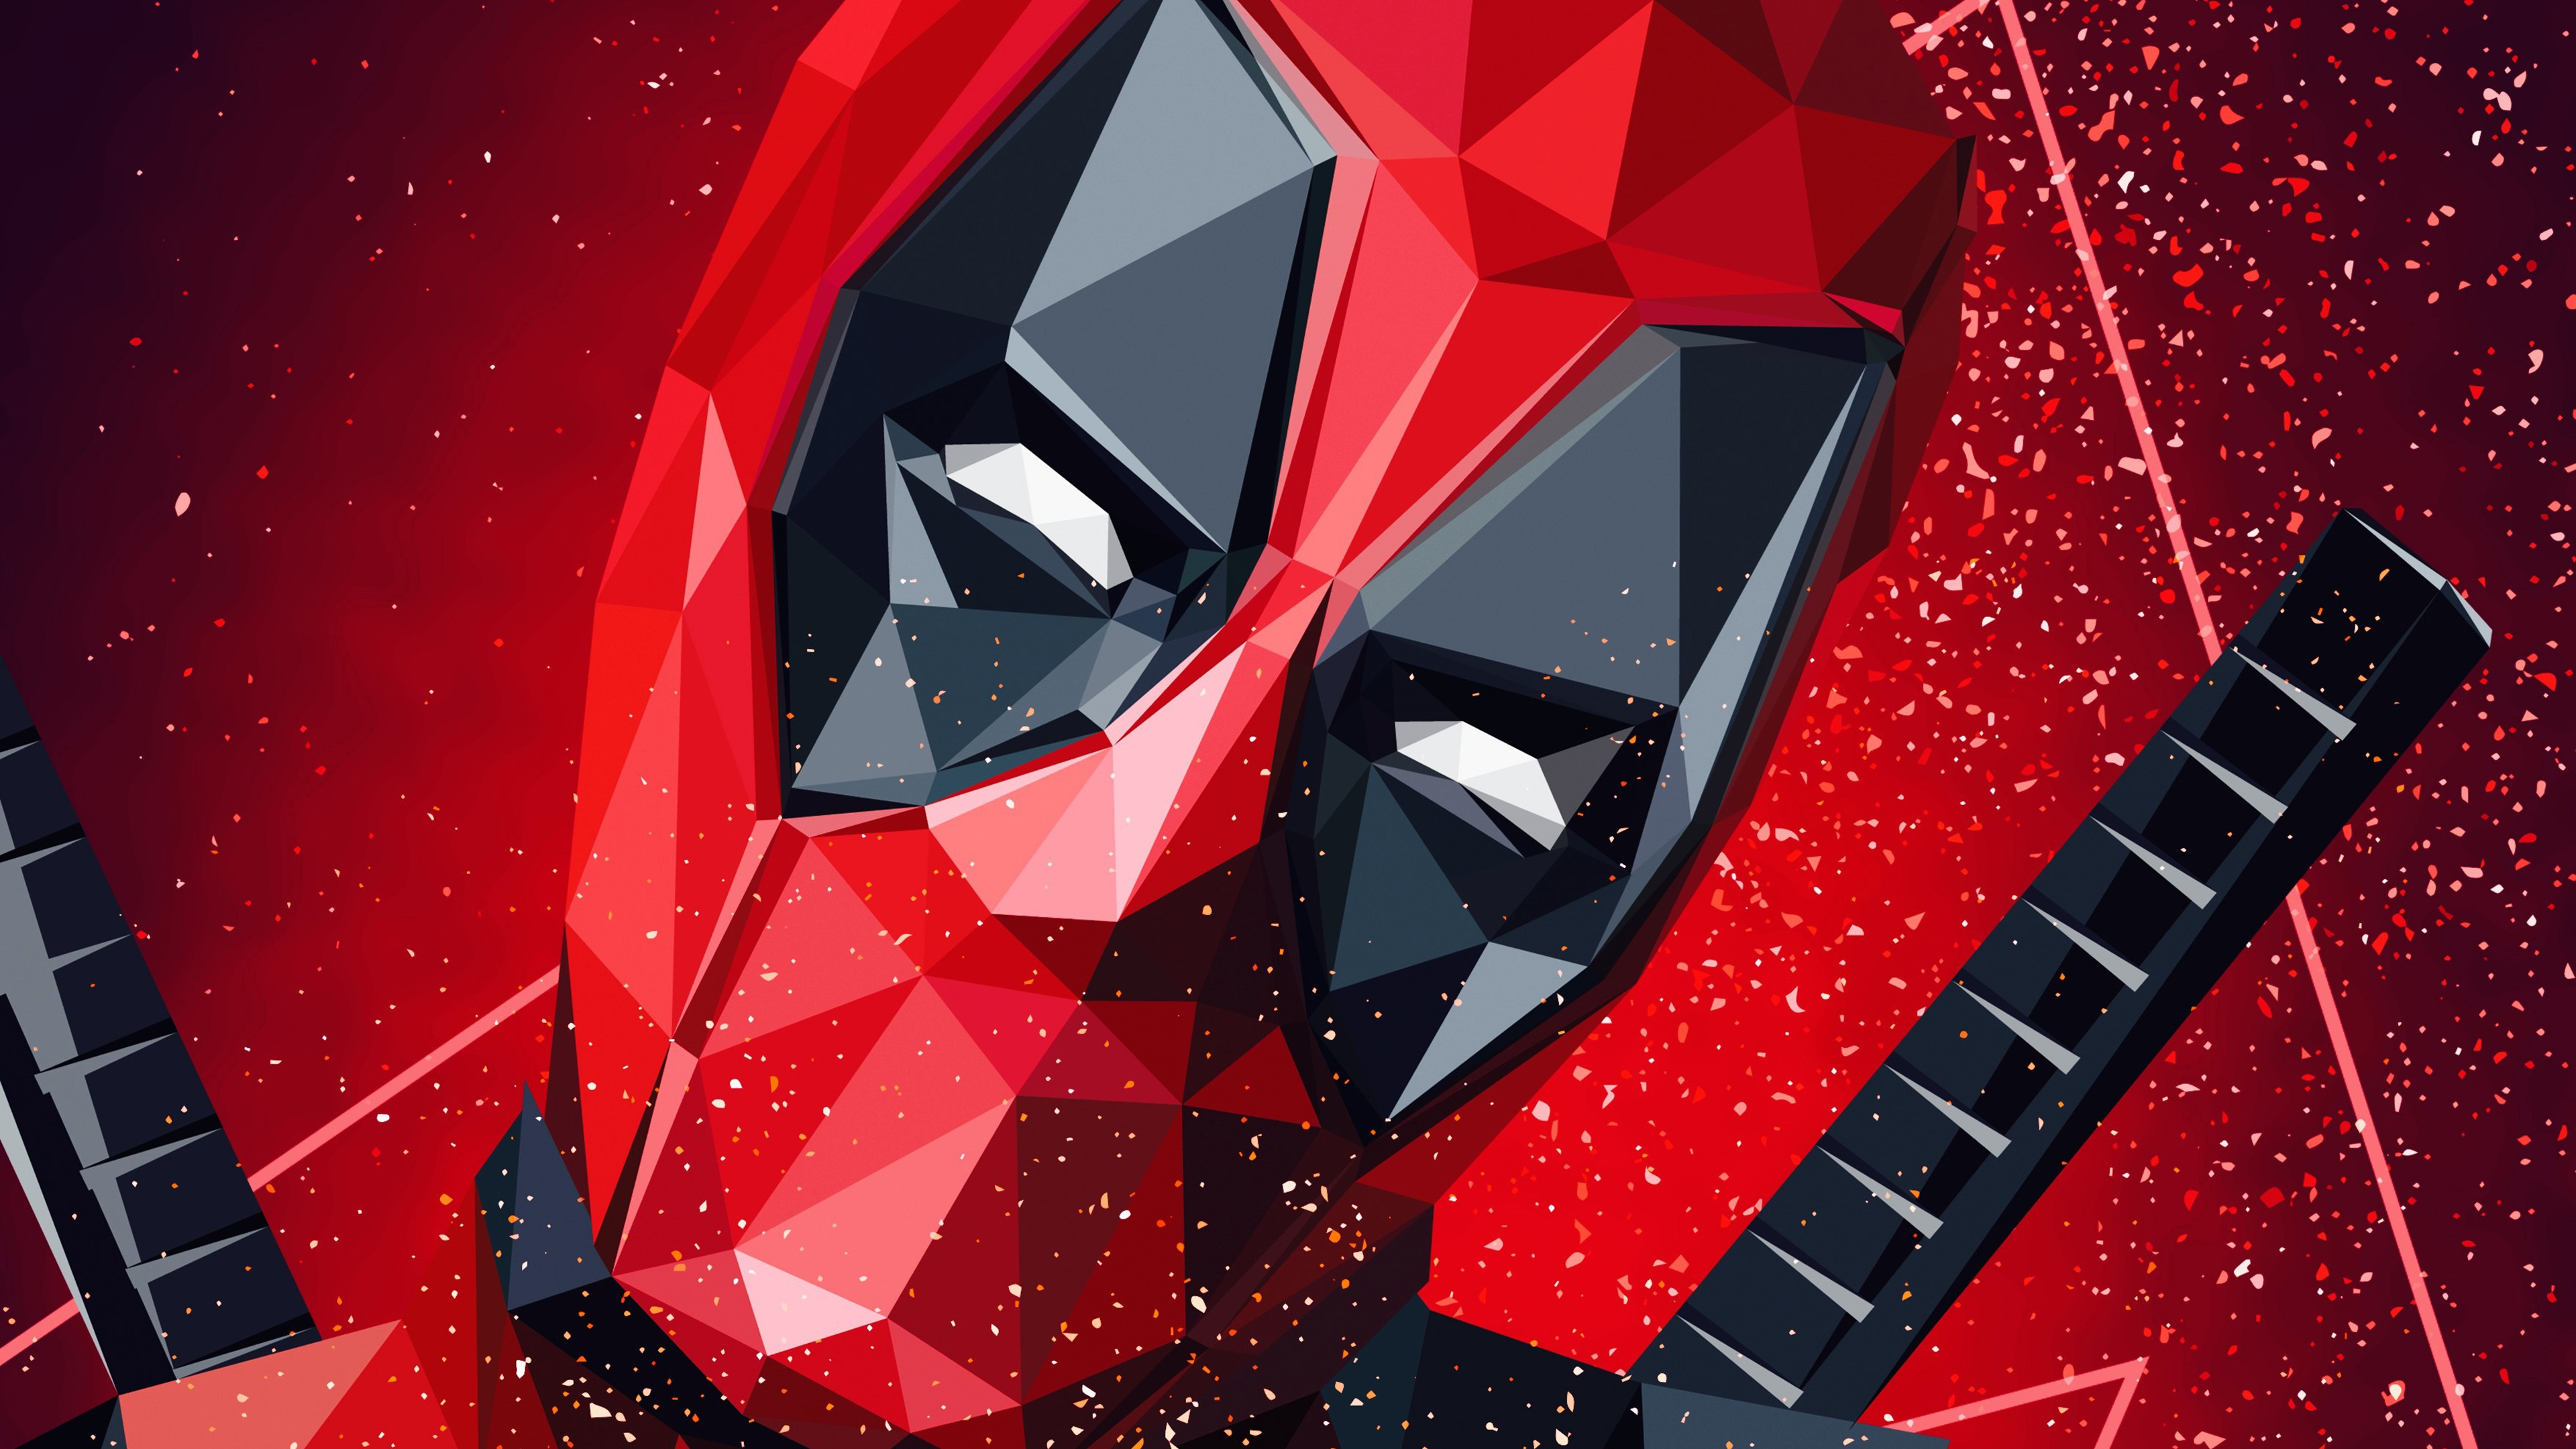 Deadpool Lowpoly Artwork 4k Wallpapers Hd Wallpapers